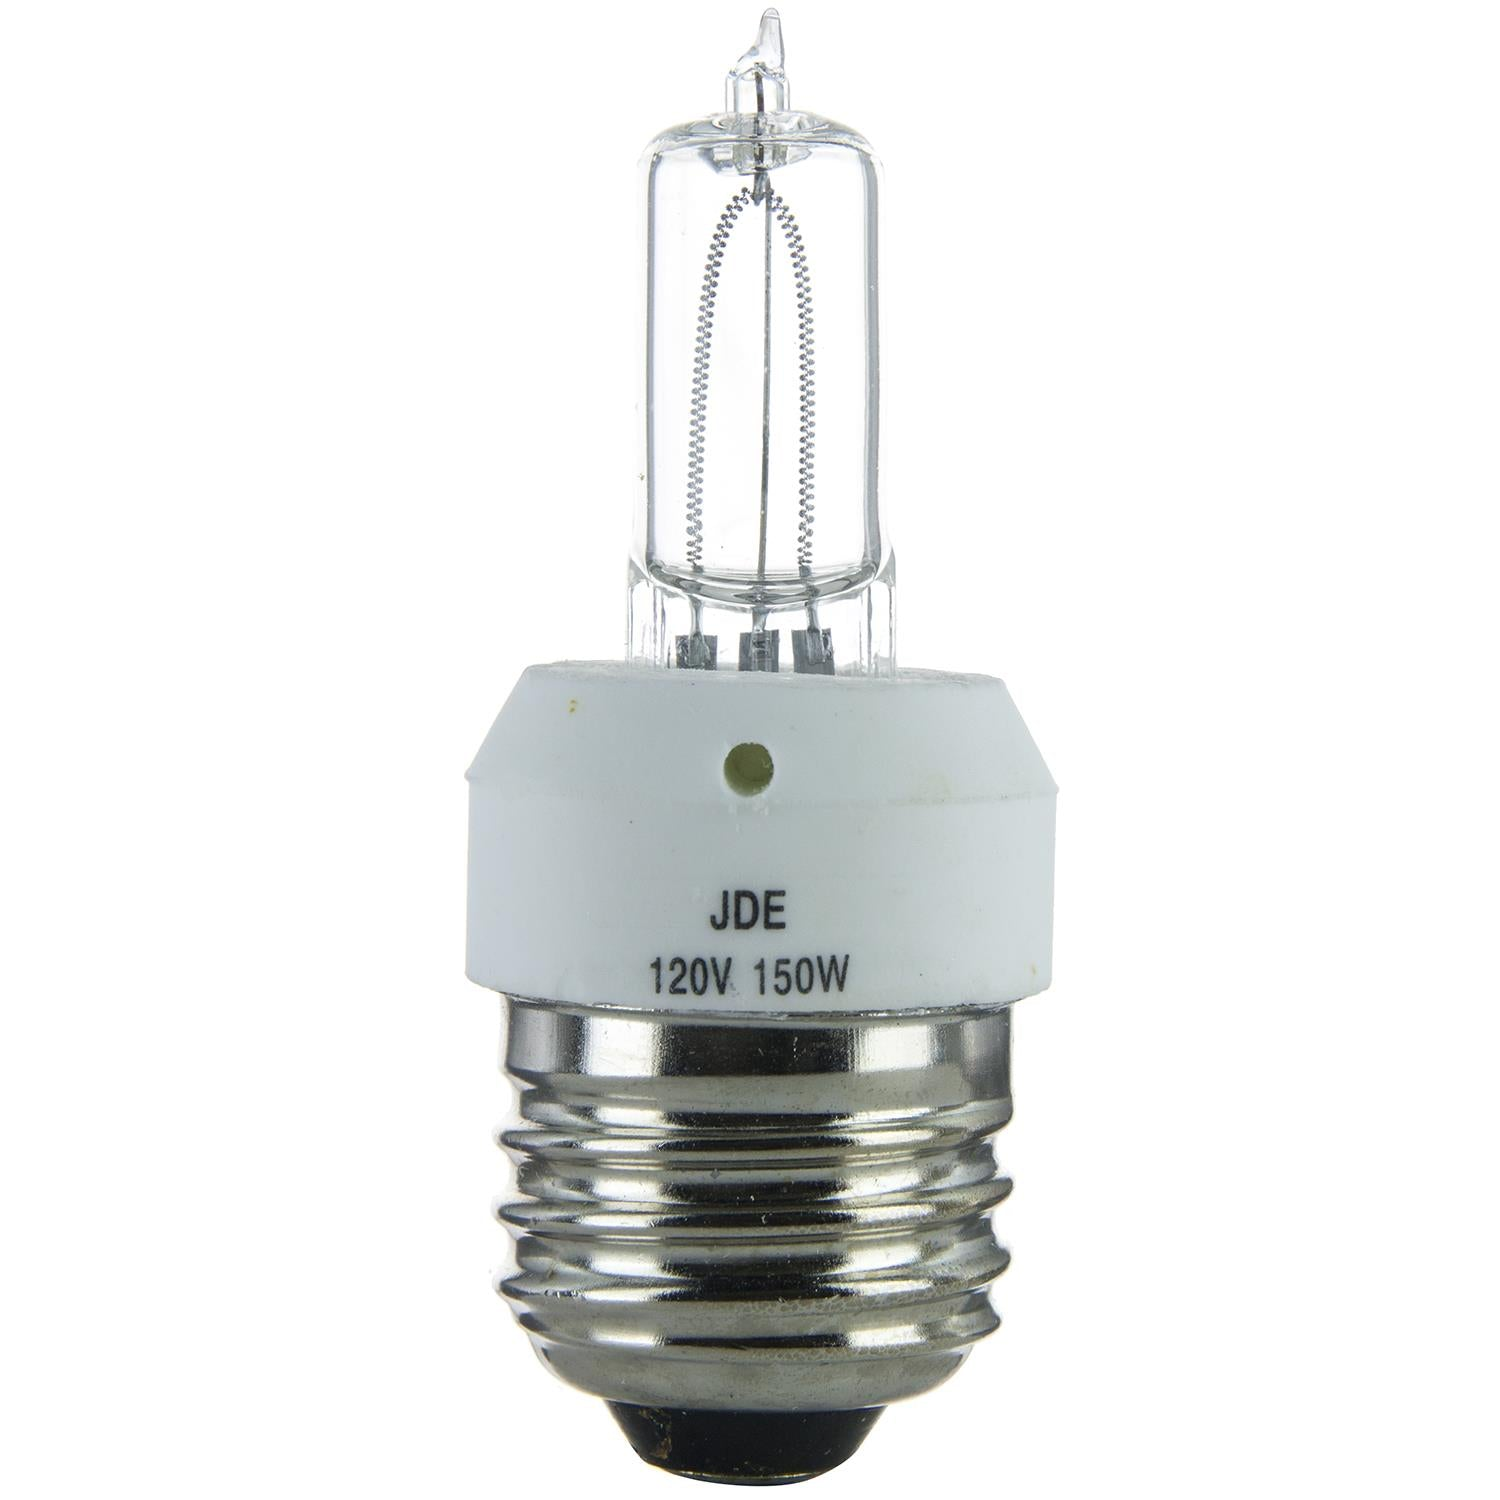 SUNLITE 150w Single Ended T4 Medium Clear Halogen Lamp